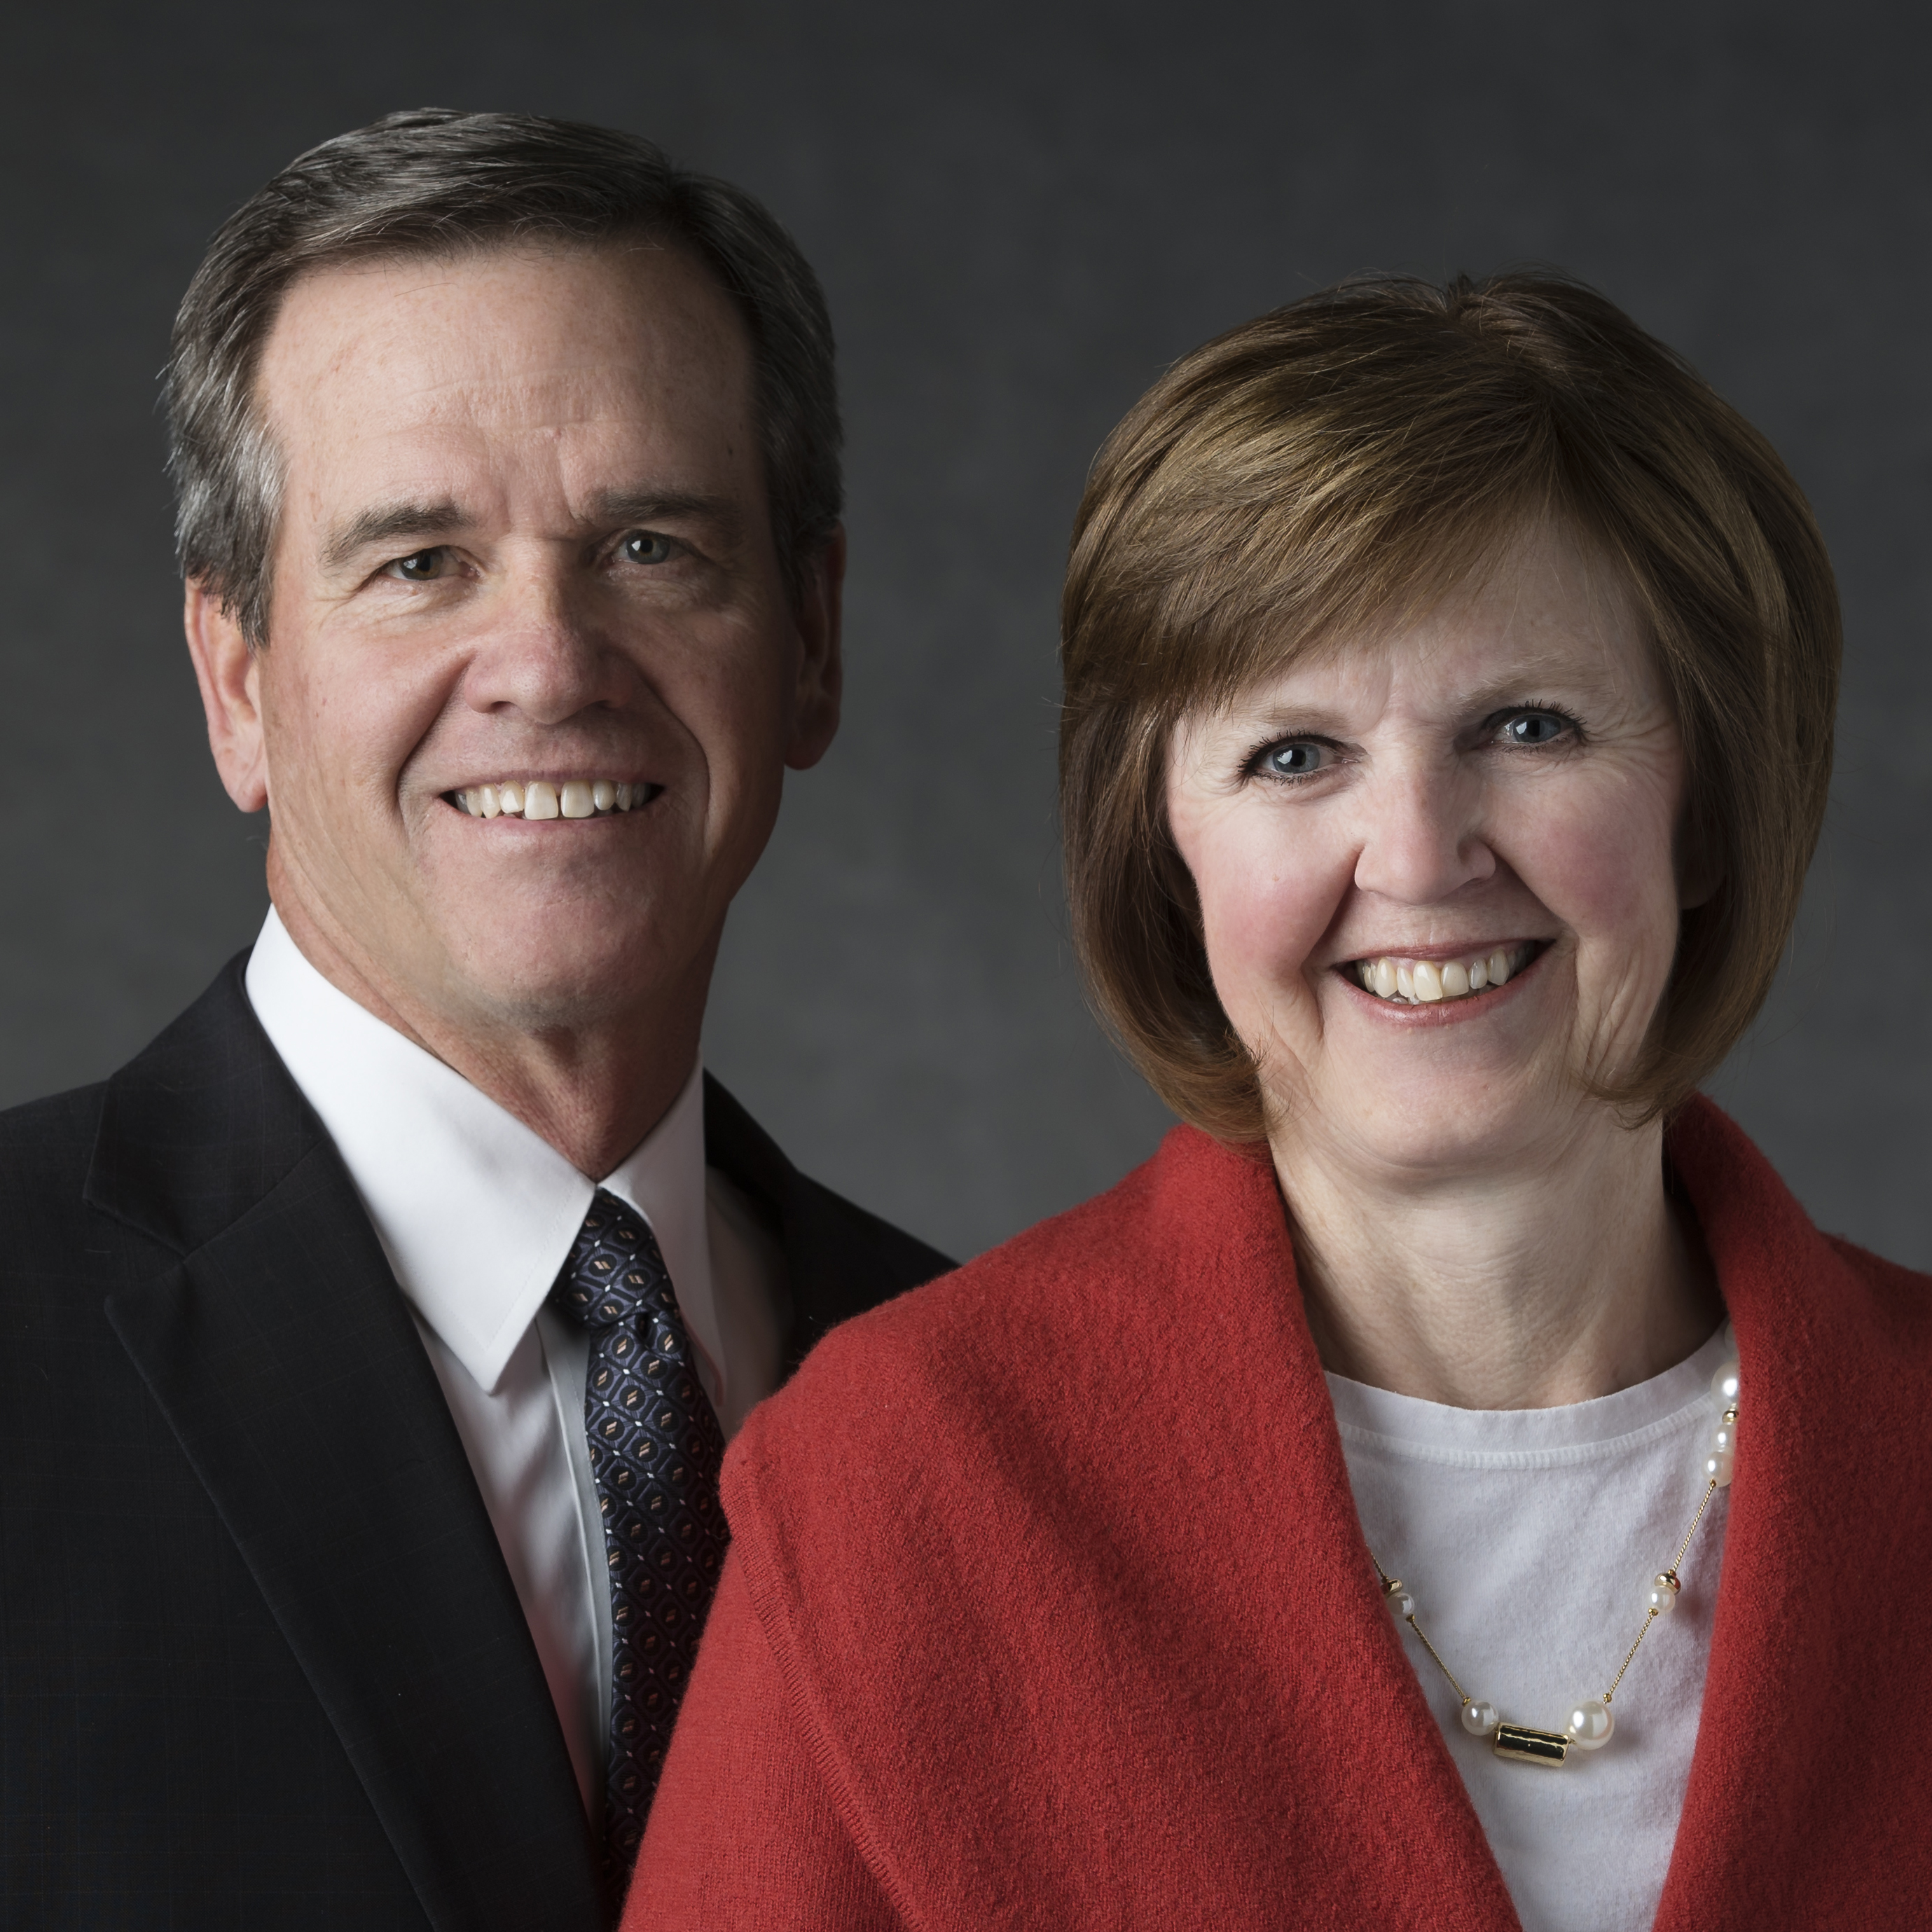 Scott D. and Janice B. Hintze